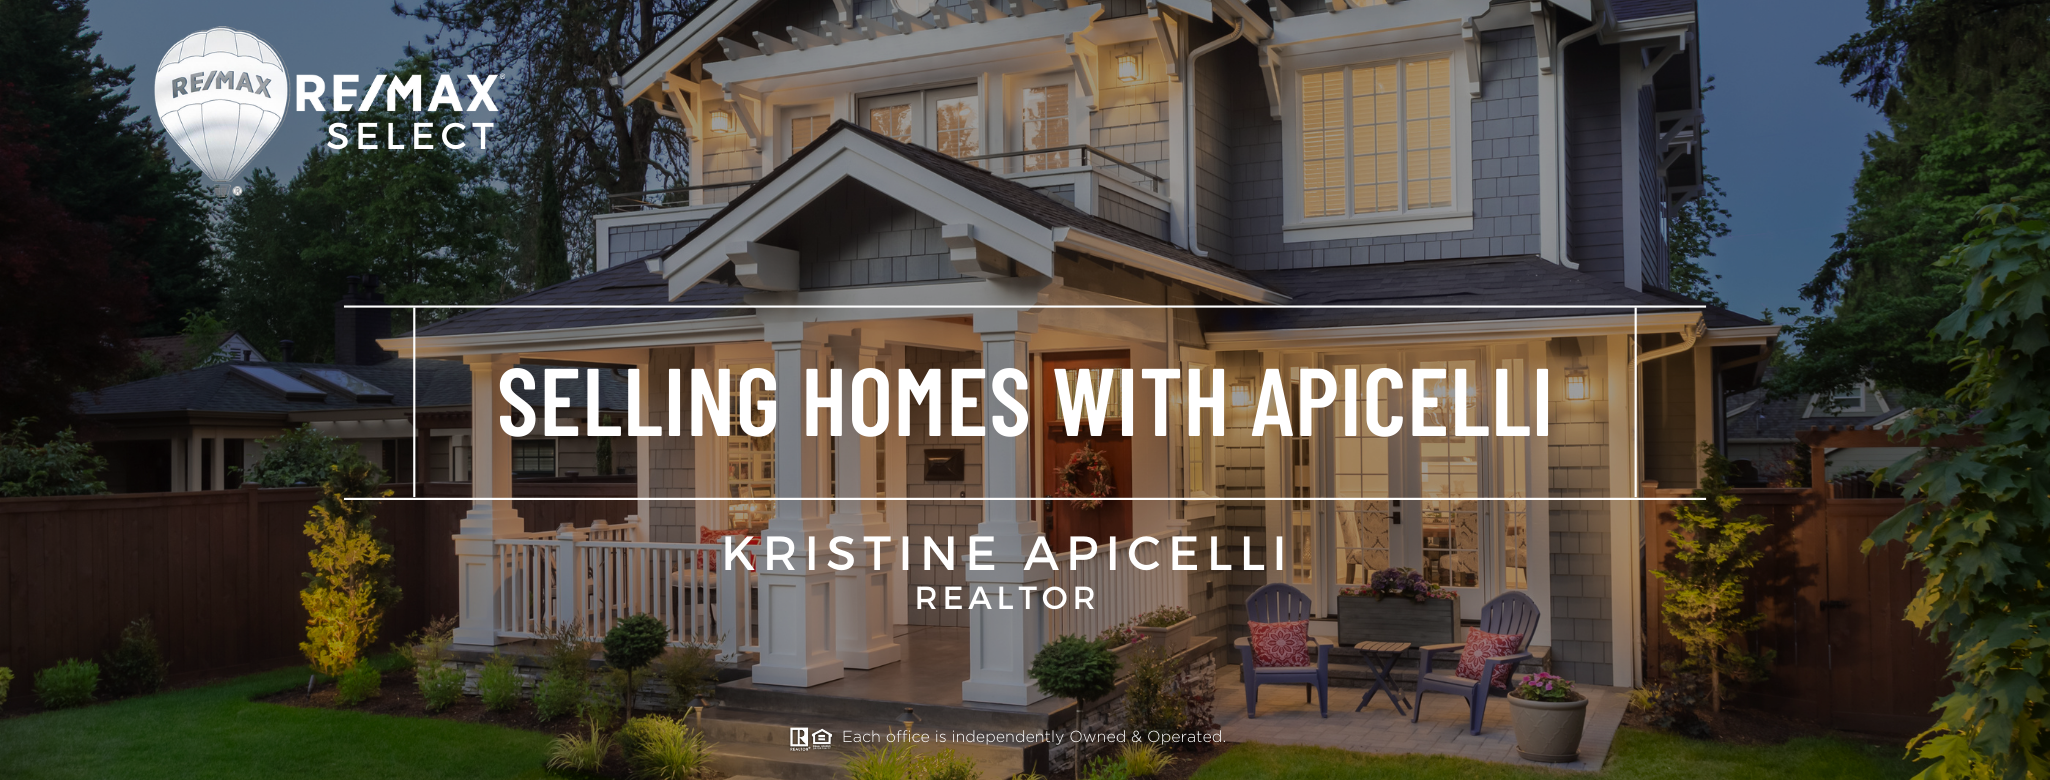 Selling Homes With Apicelli